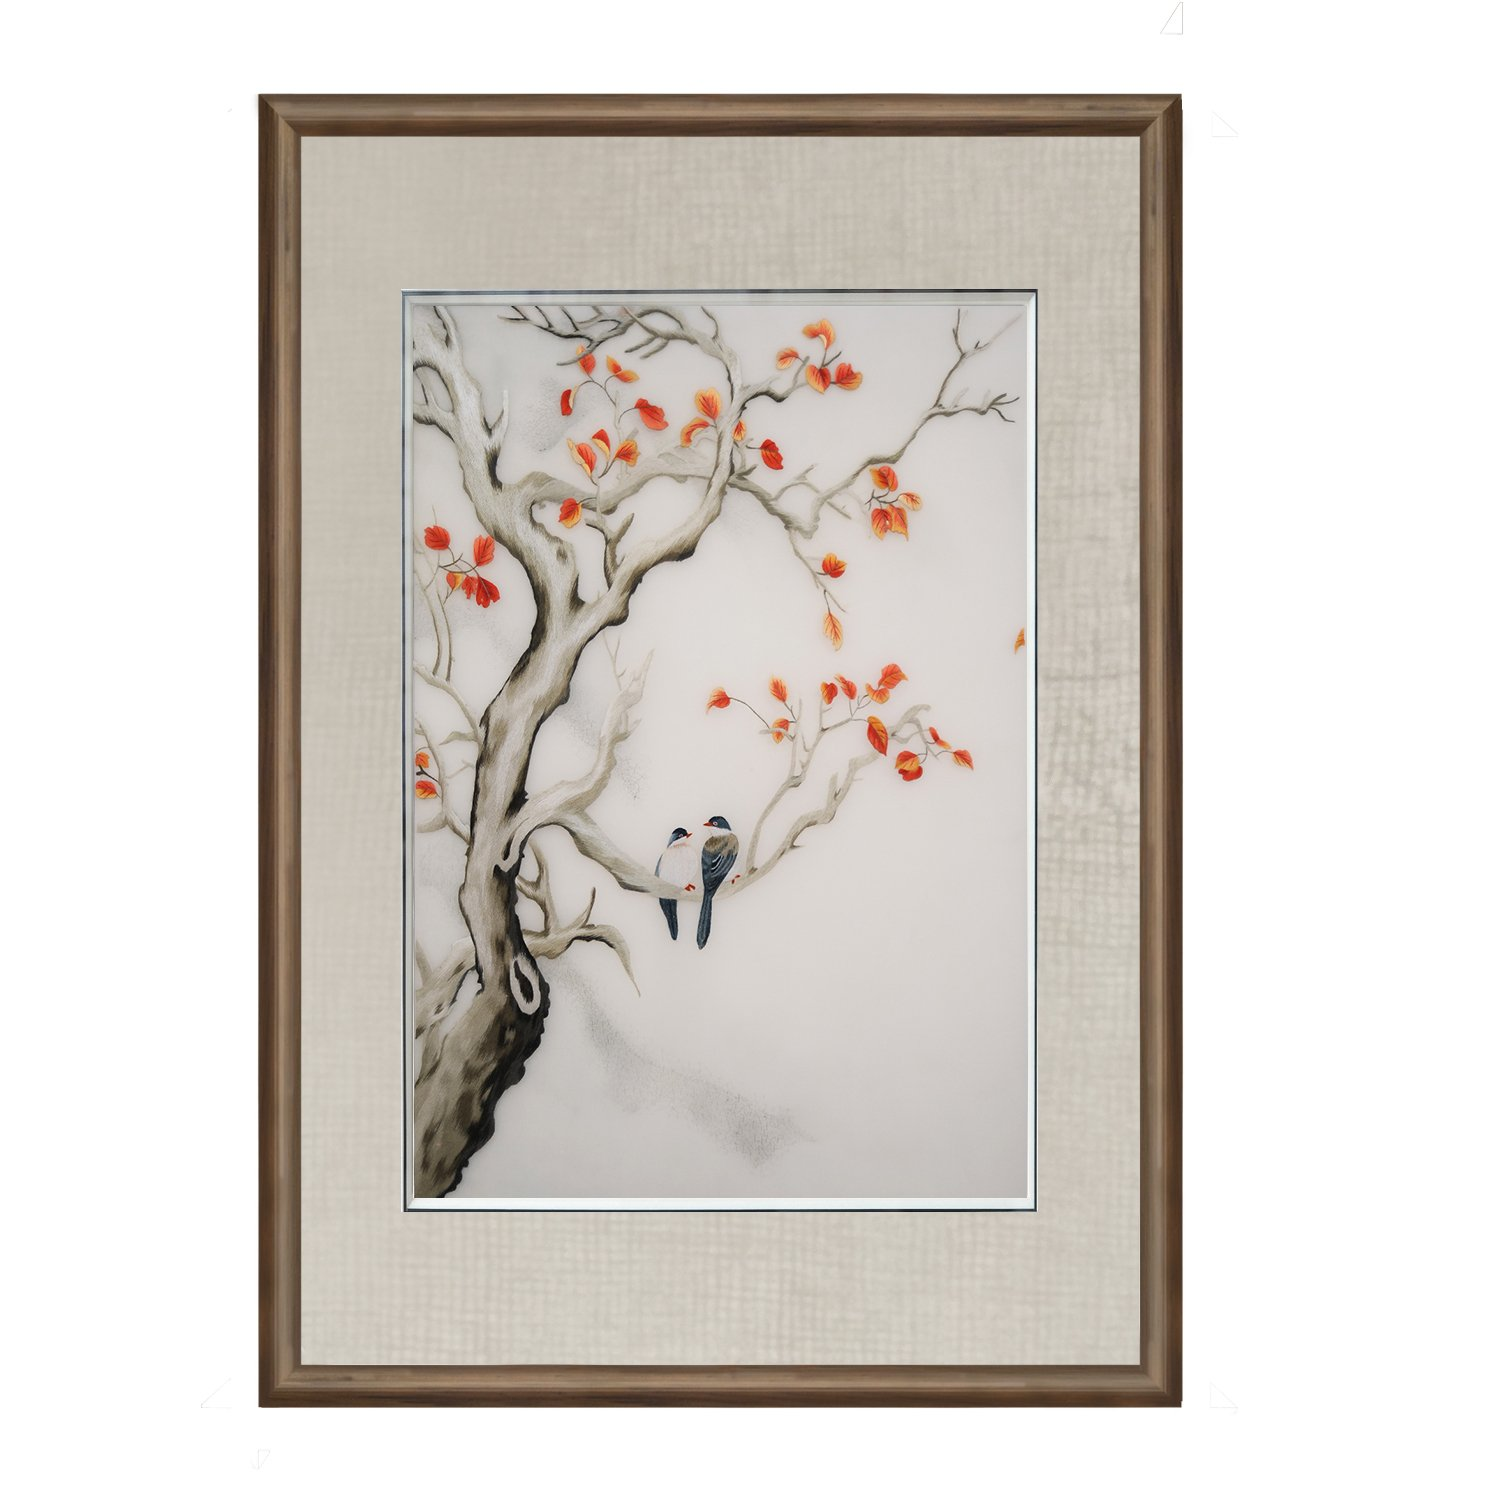 Vivi min 100% Handmade Embroidery Chinese ink painting Framed Modern Artwork Hanging Wall Decoration Souvenir Christmas gift Fashion collectible Gift Painting art